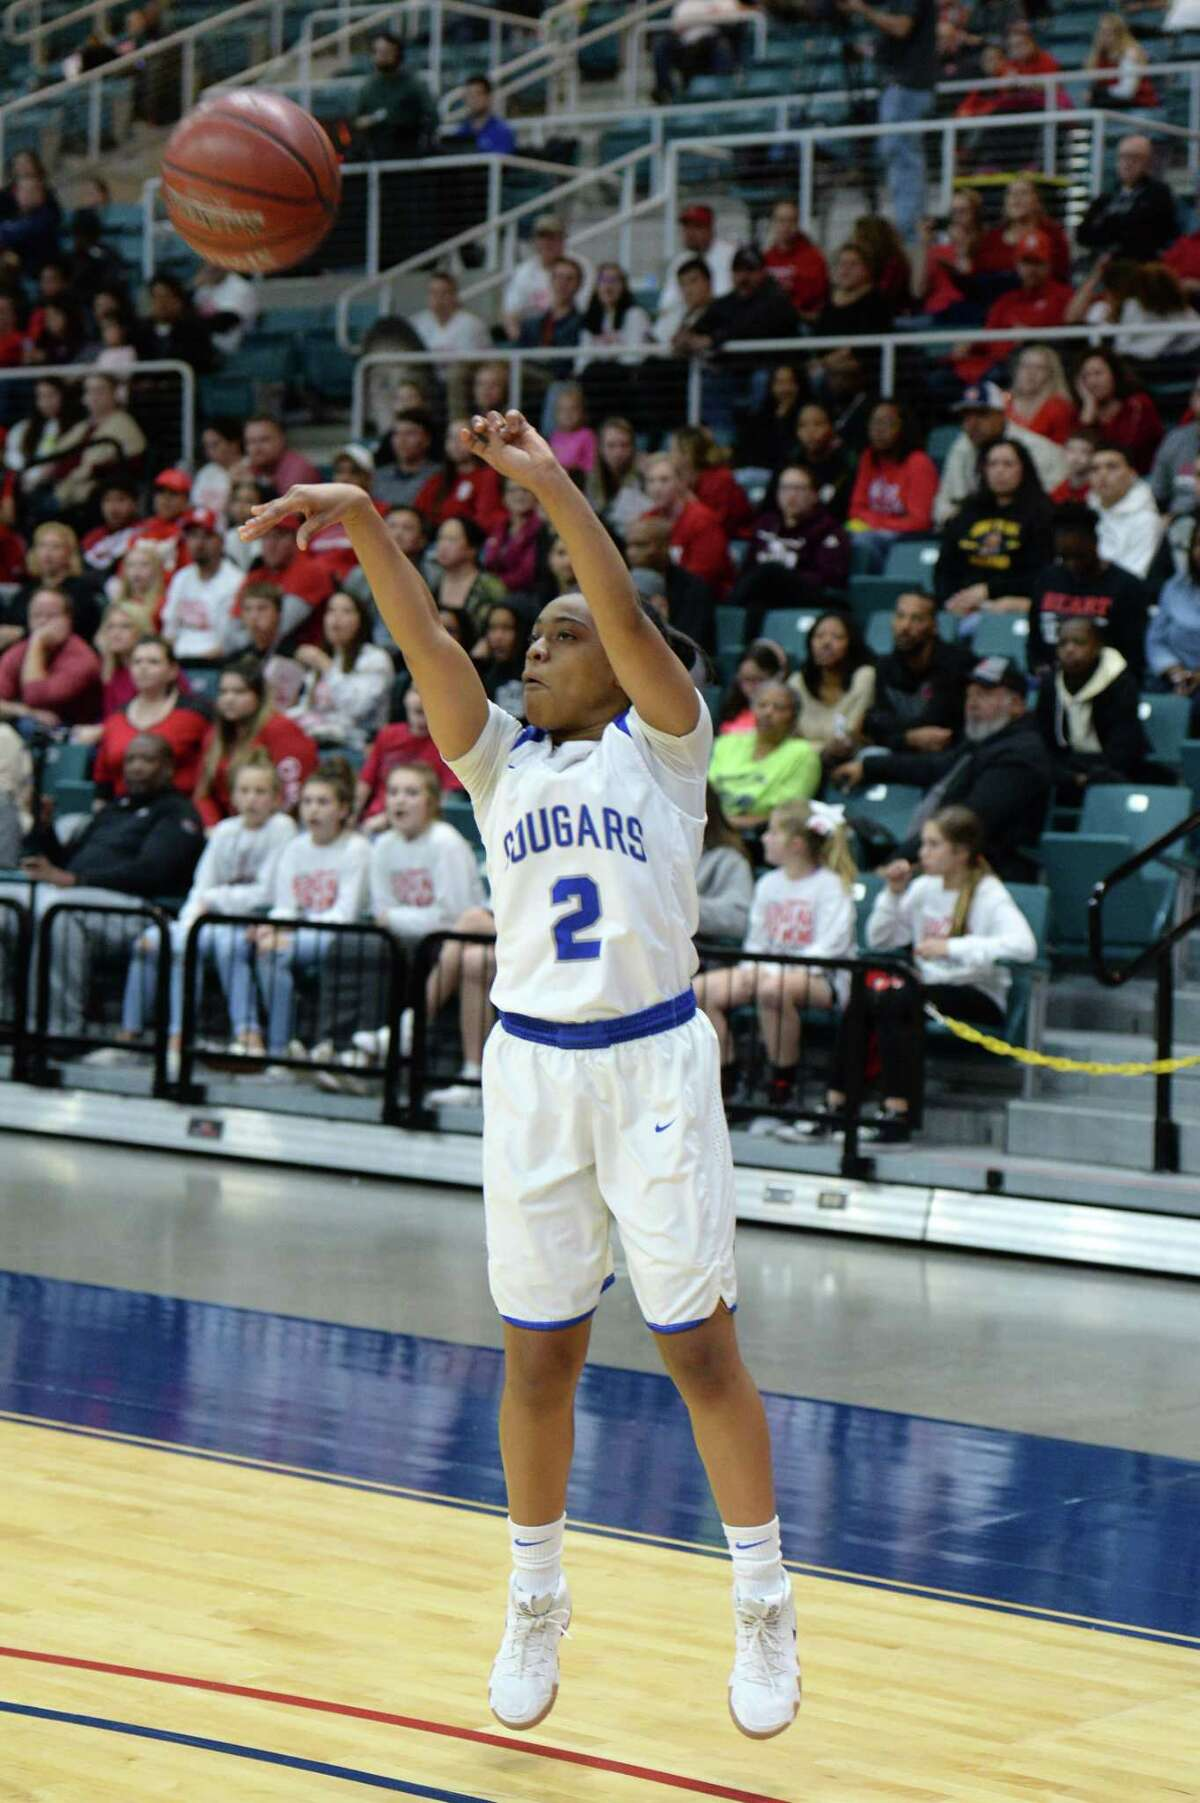 Marcayla Wortham (2) of Cy-Creek attempts a 3-point shot during the first half of a Class 6A, Region III quarterfinal basketball playoff game between the Katy Tigers and the Cy-Creek Cougars on Tuesday, February 19, 2019 at the Merrell Center, Katy, TX.